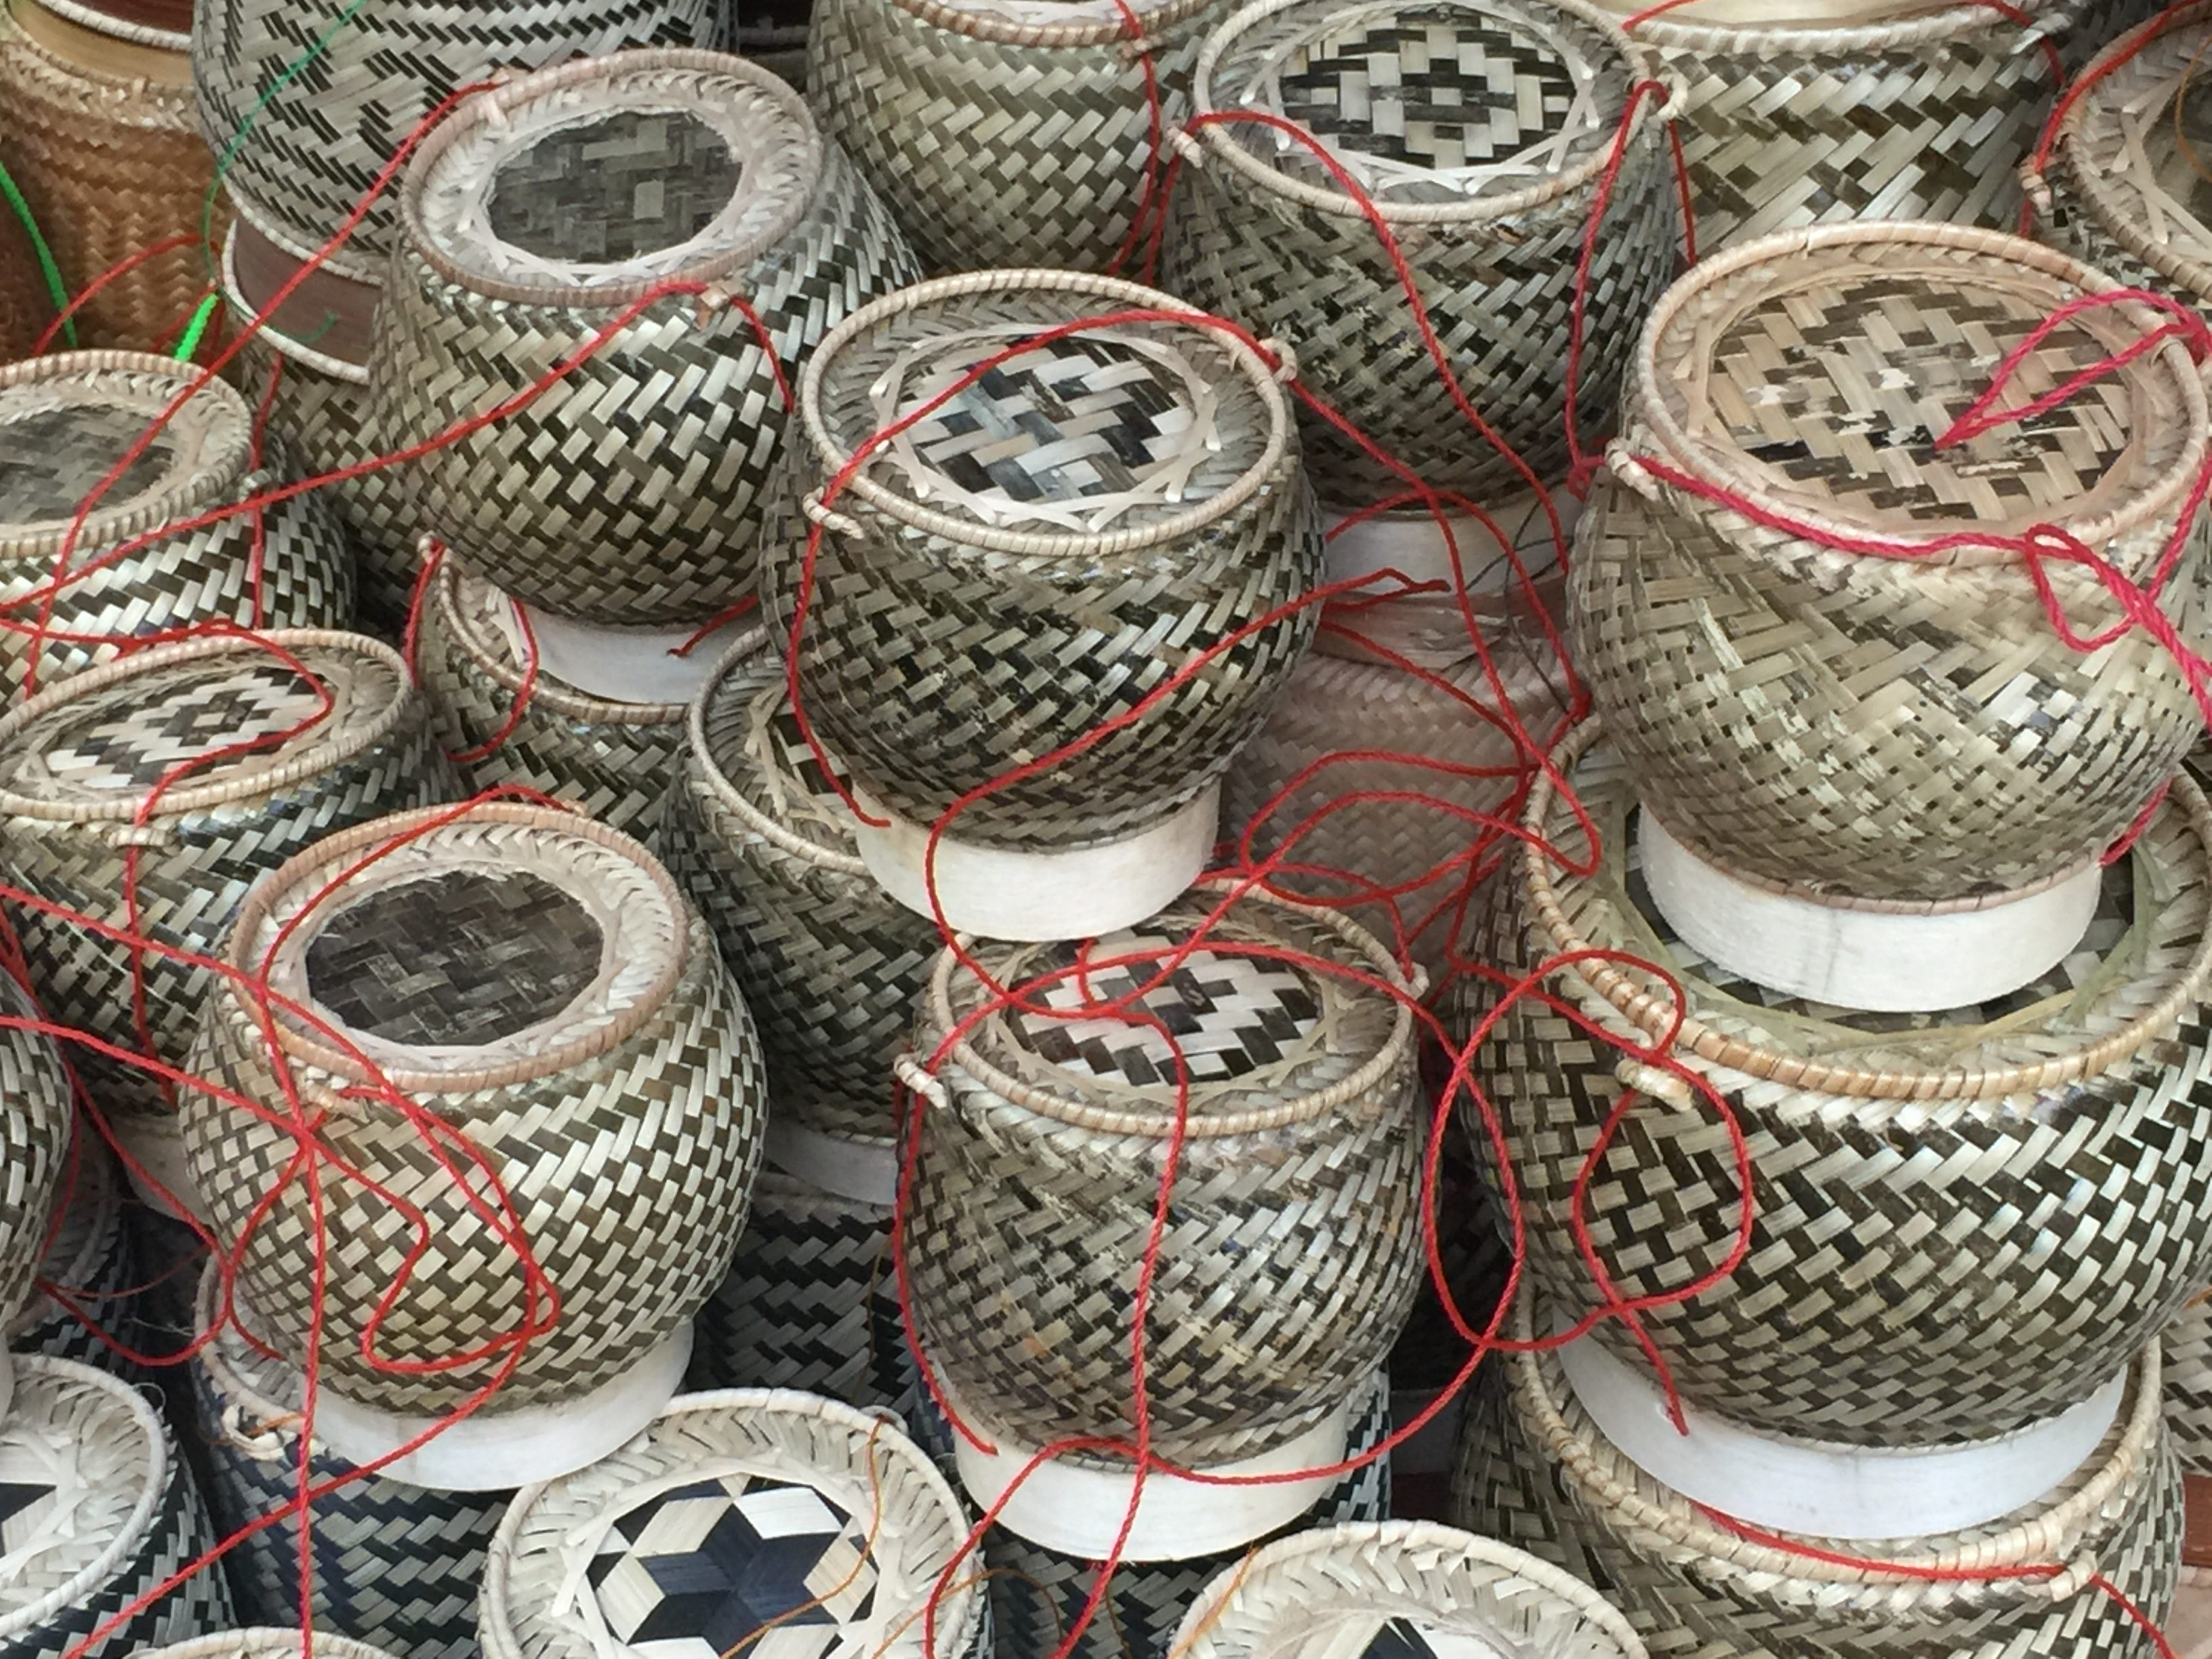 Handwoven Sticky Rice Baskets Luang Prabang Laos Asia Antiques Buying Tours with The Antiques Diva